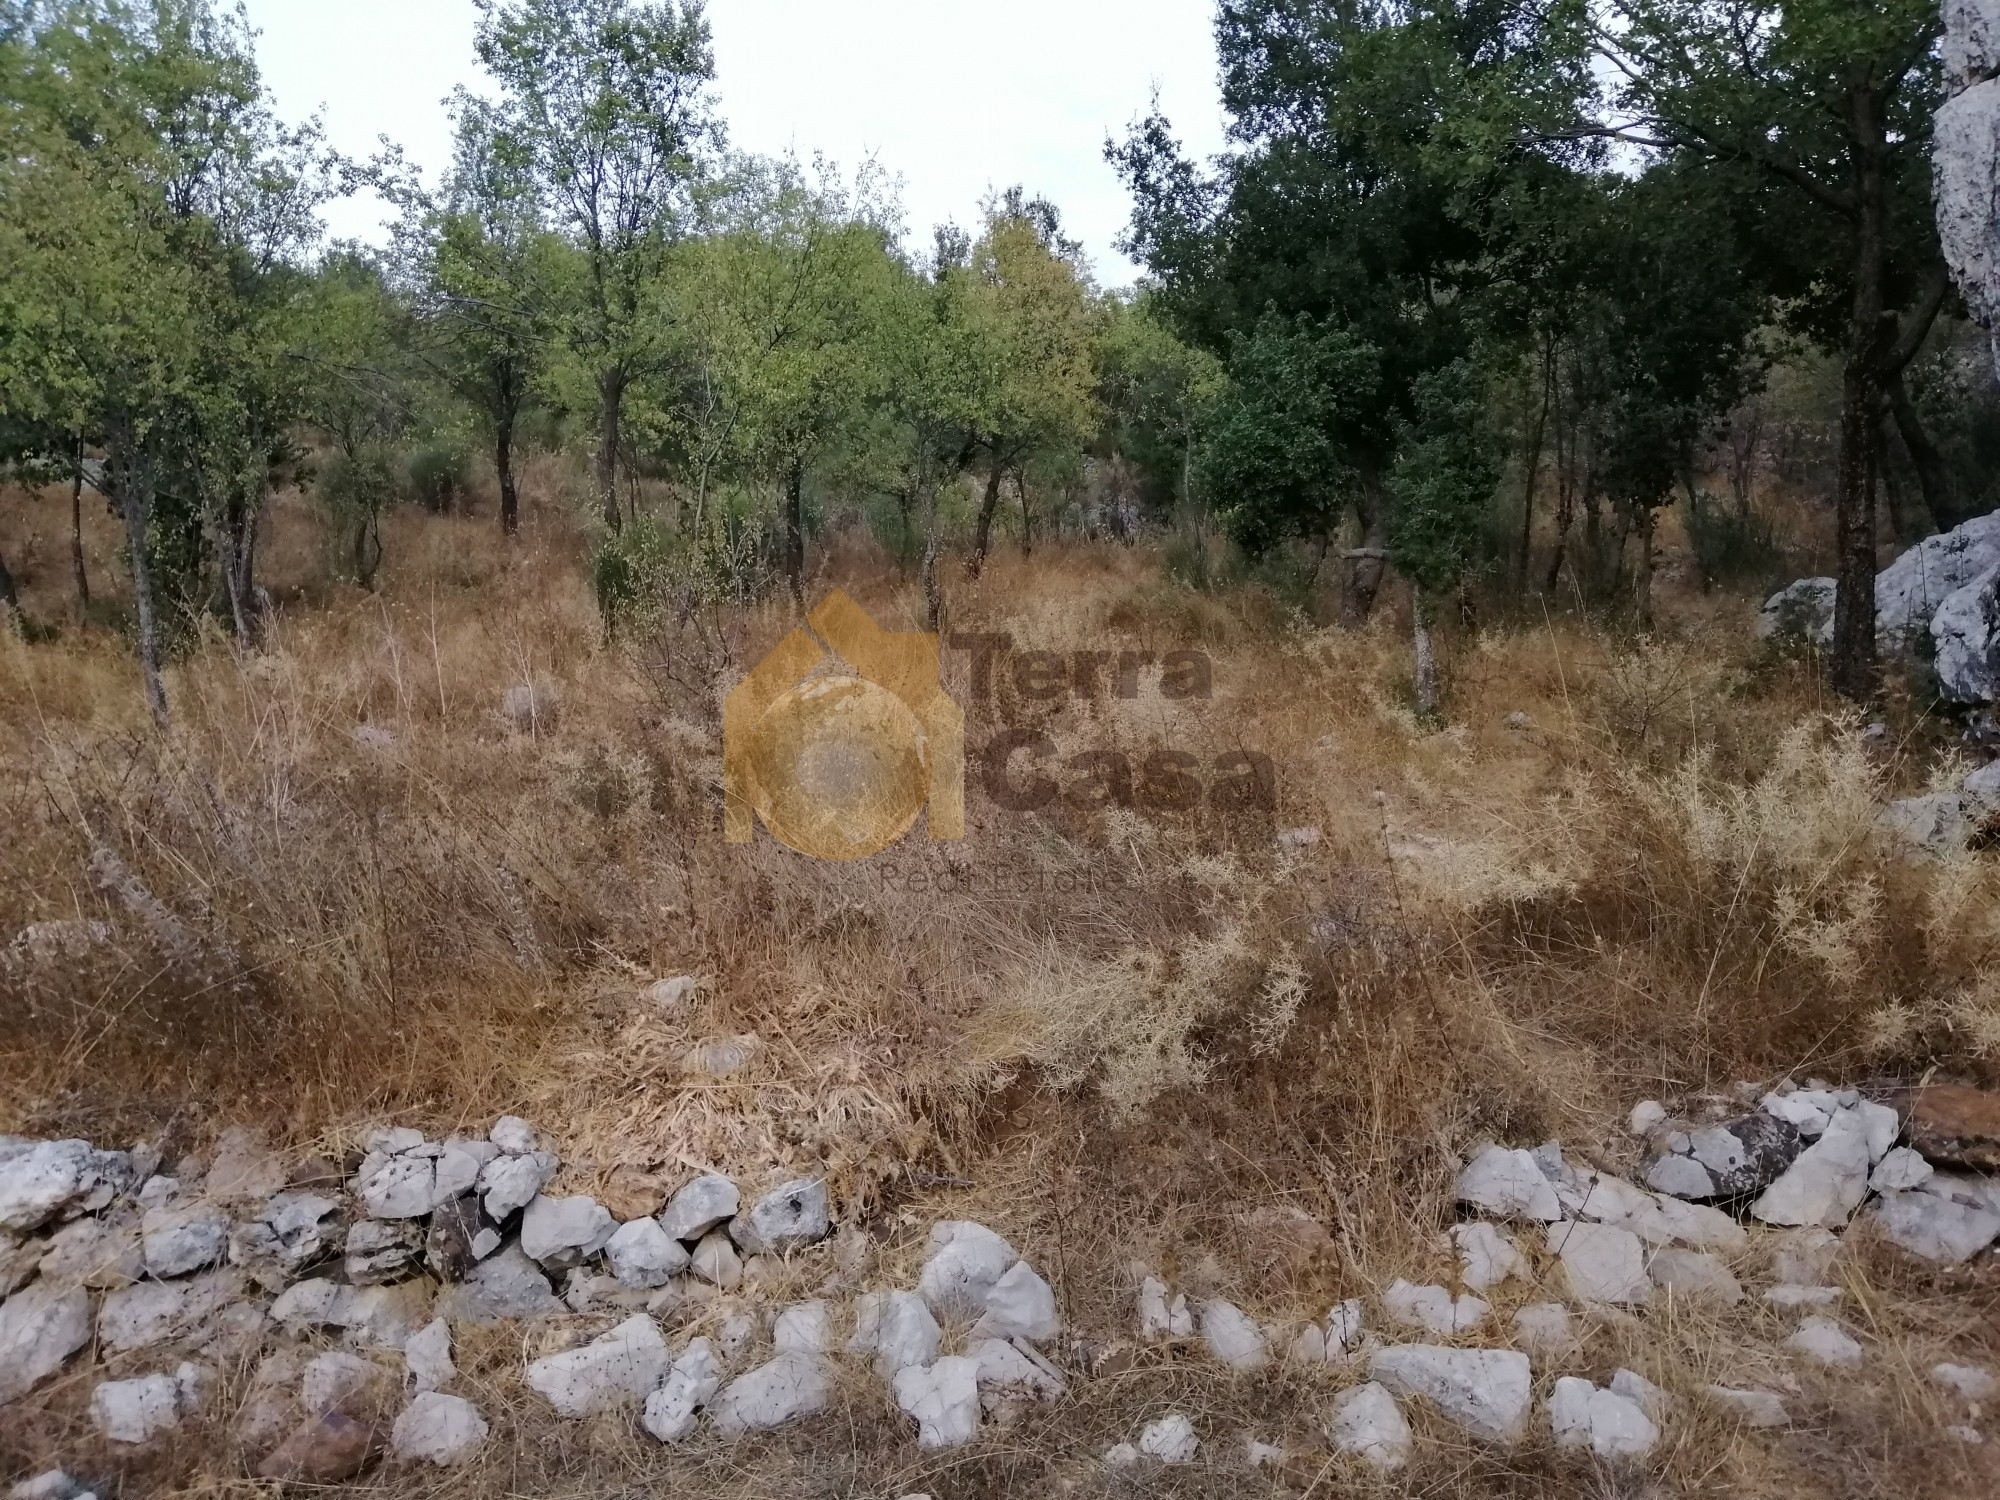 Land for sale in Faytroun ,banker check accepted